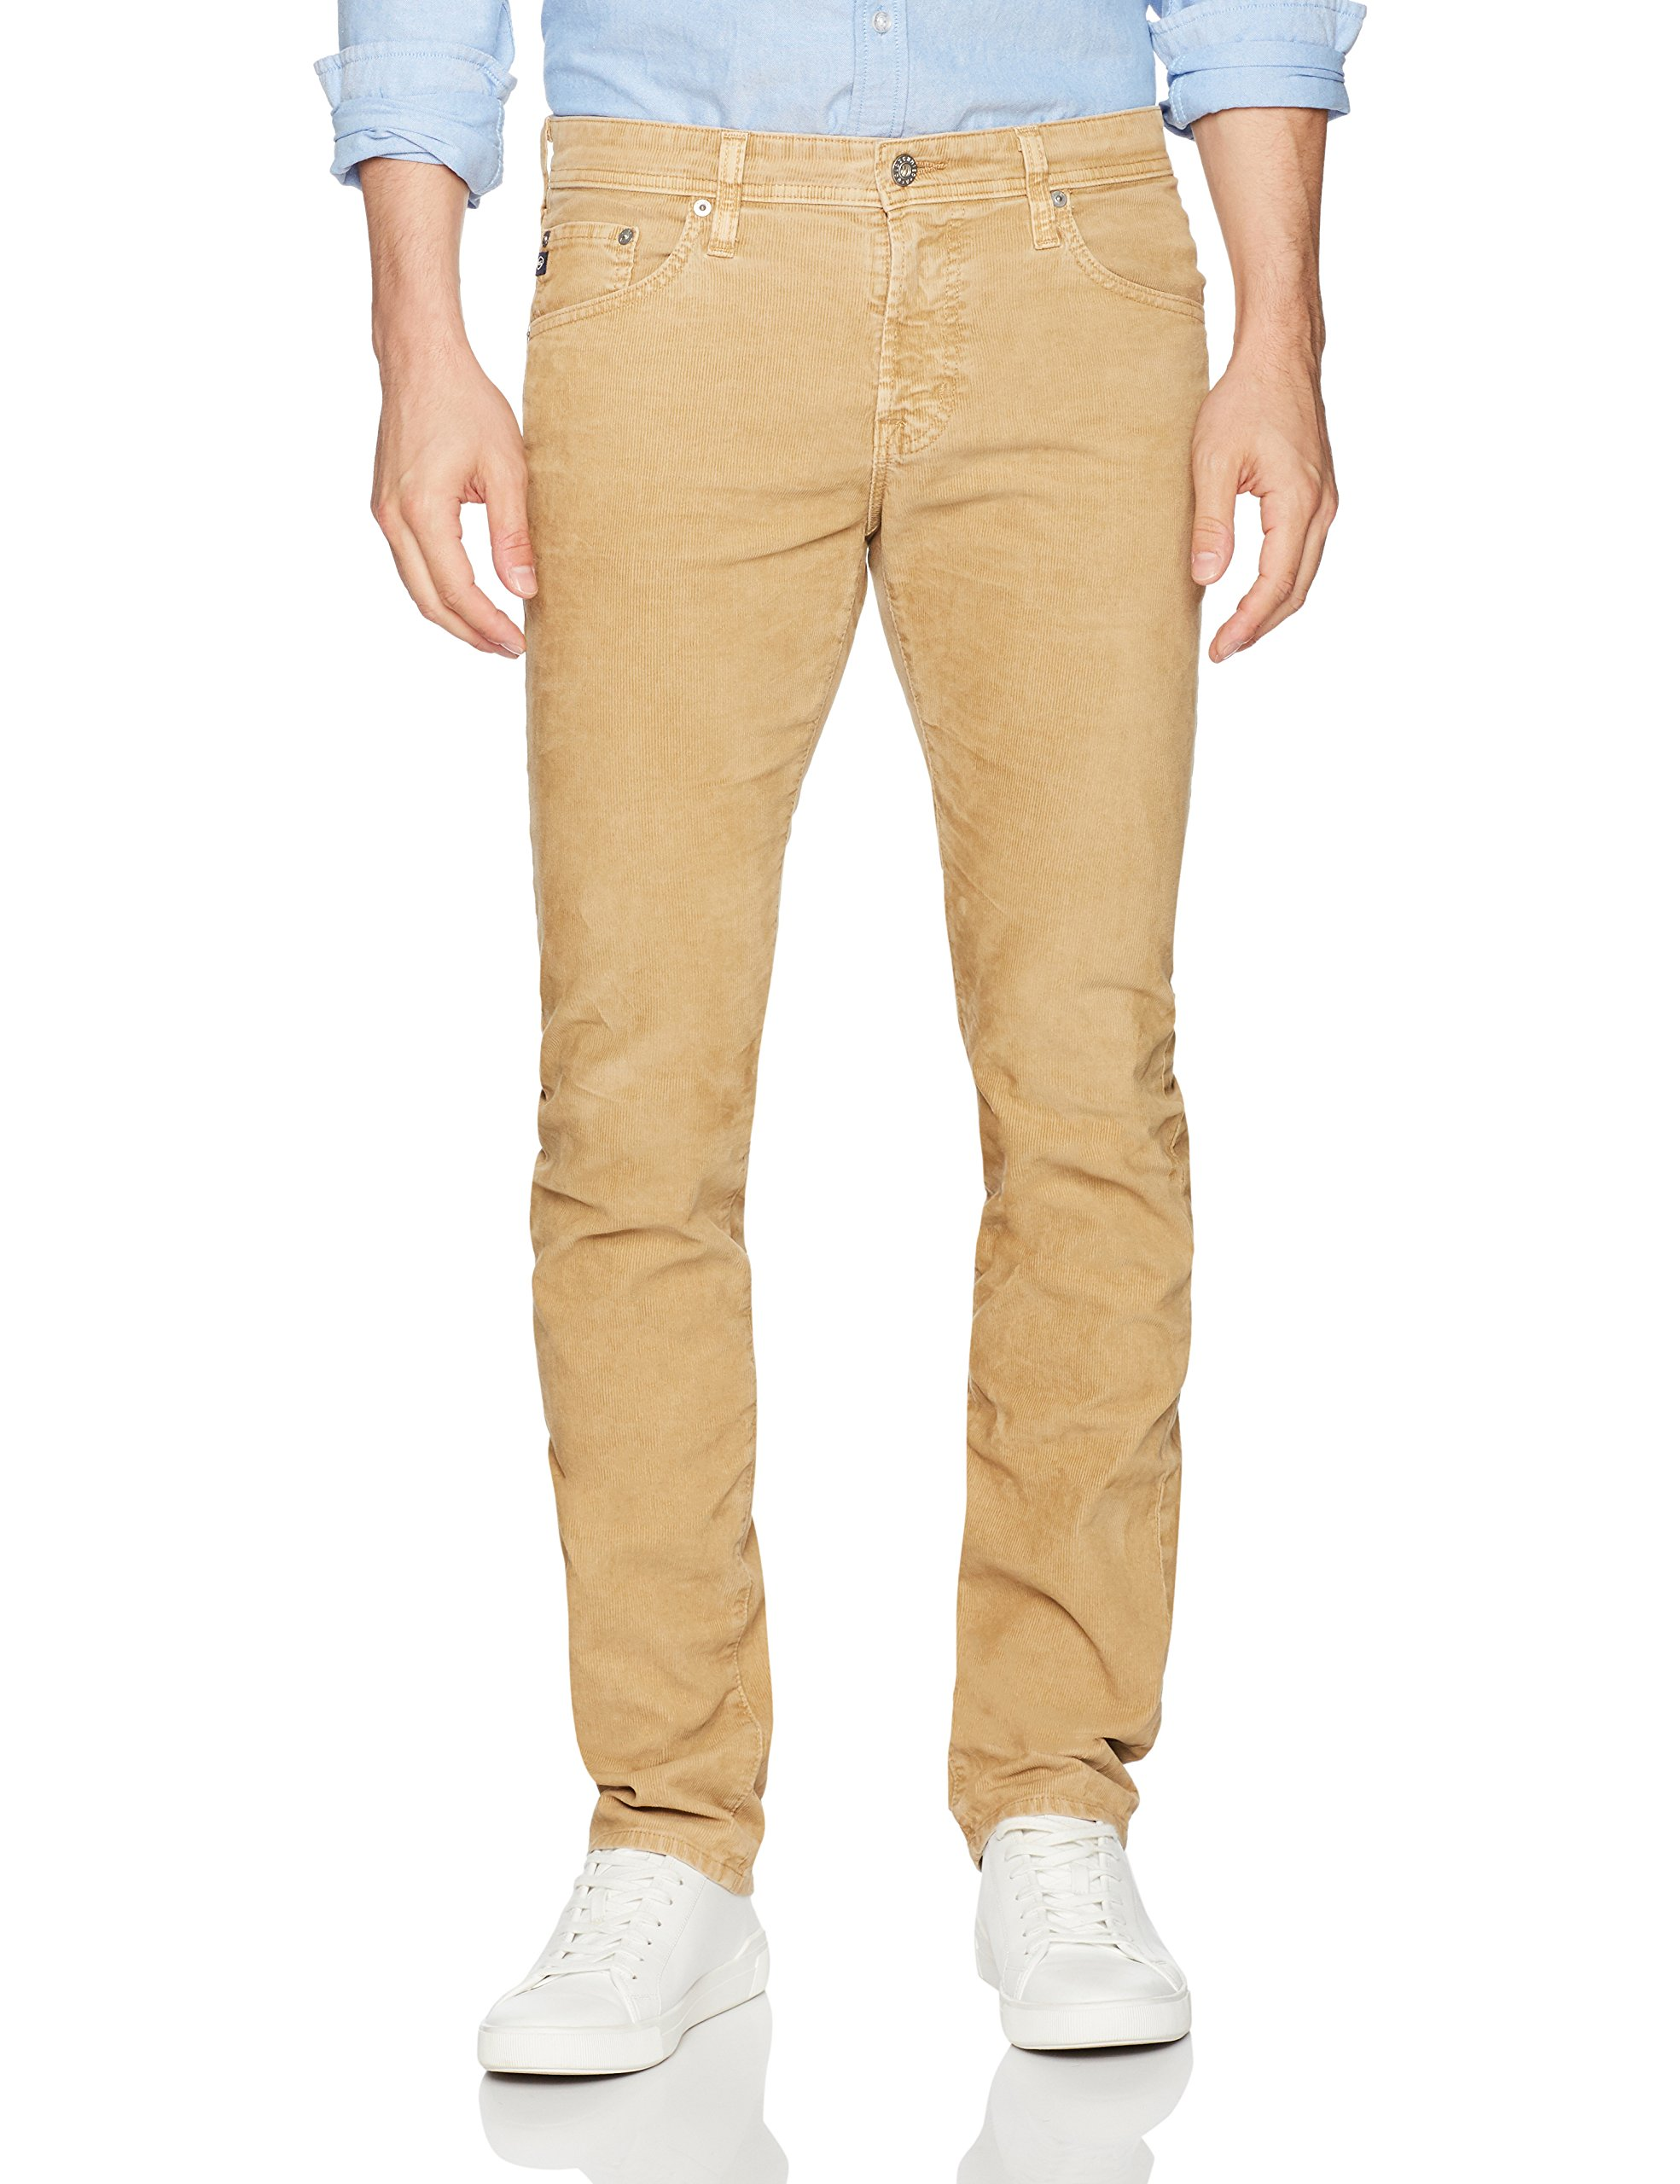 AG Adriano Goldschmied Men's Matchbox Slim Straight Leg Corduroy, Silica Sand, 31